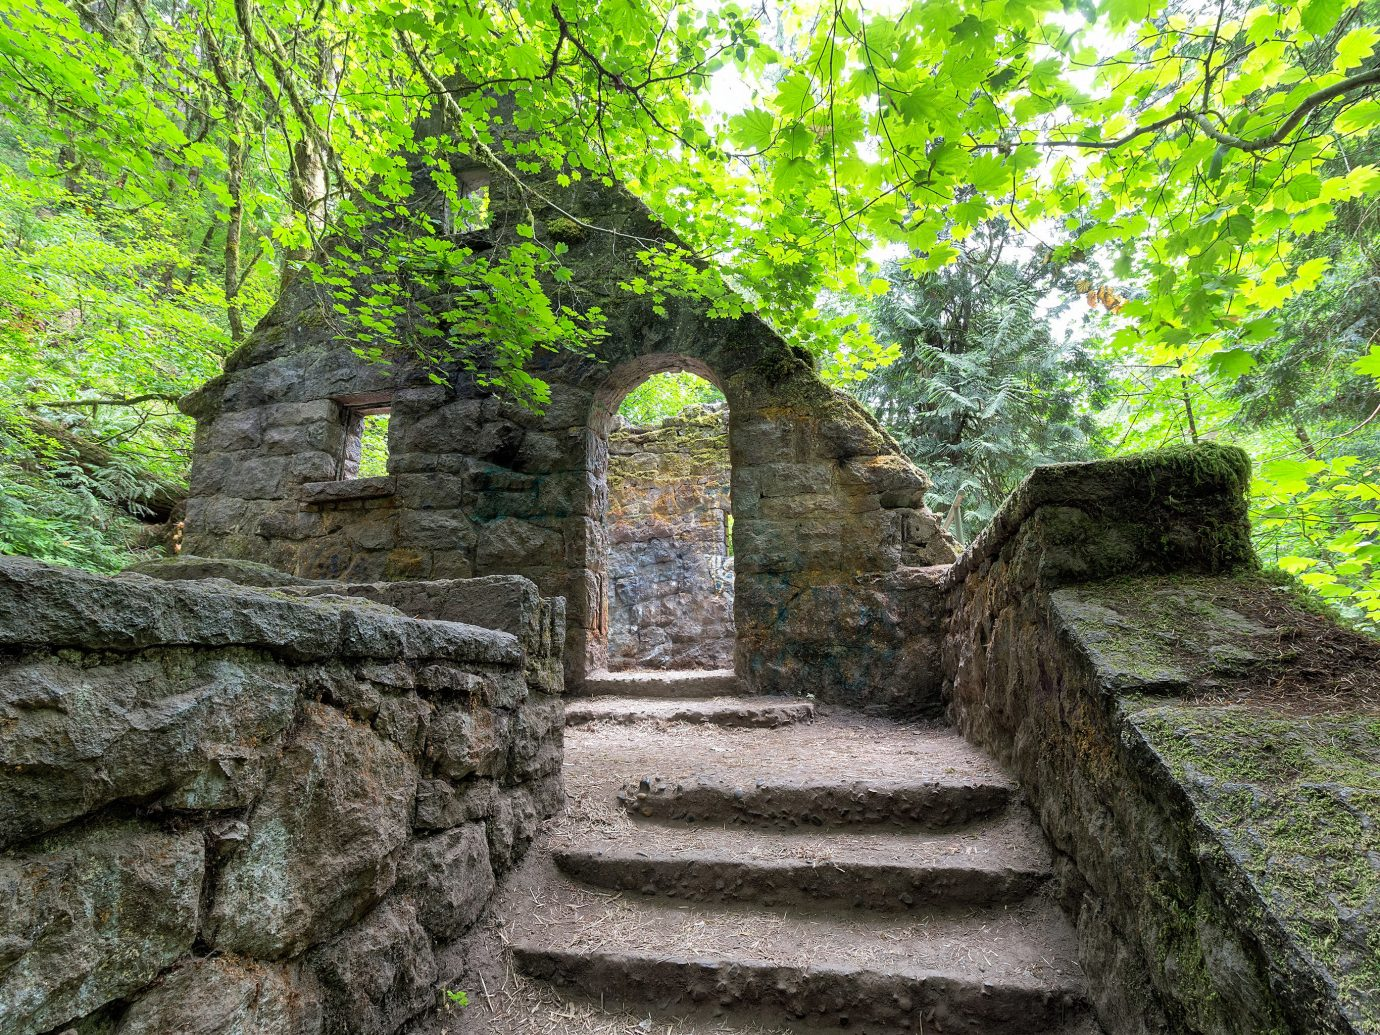 Trip Ideas tree outdoor rock stone green Ruins building wall rural area Garden woodland ancient history shrine wood monastery flower autumn Forest plant surrounded wooded